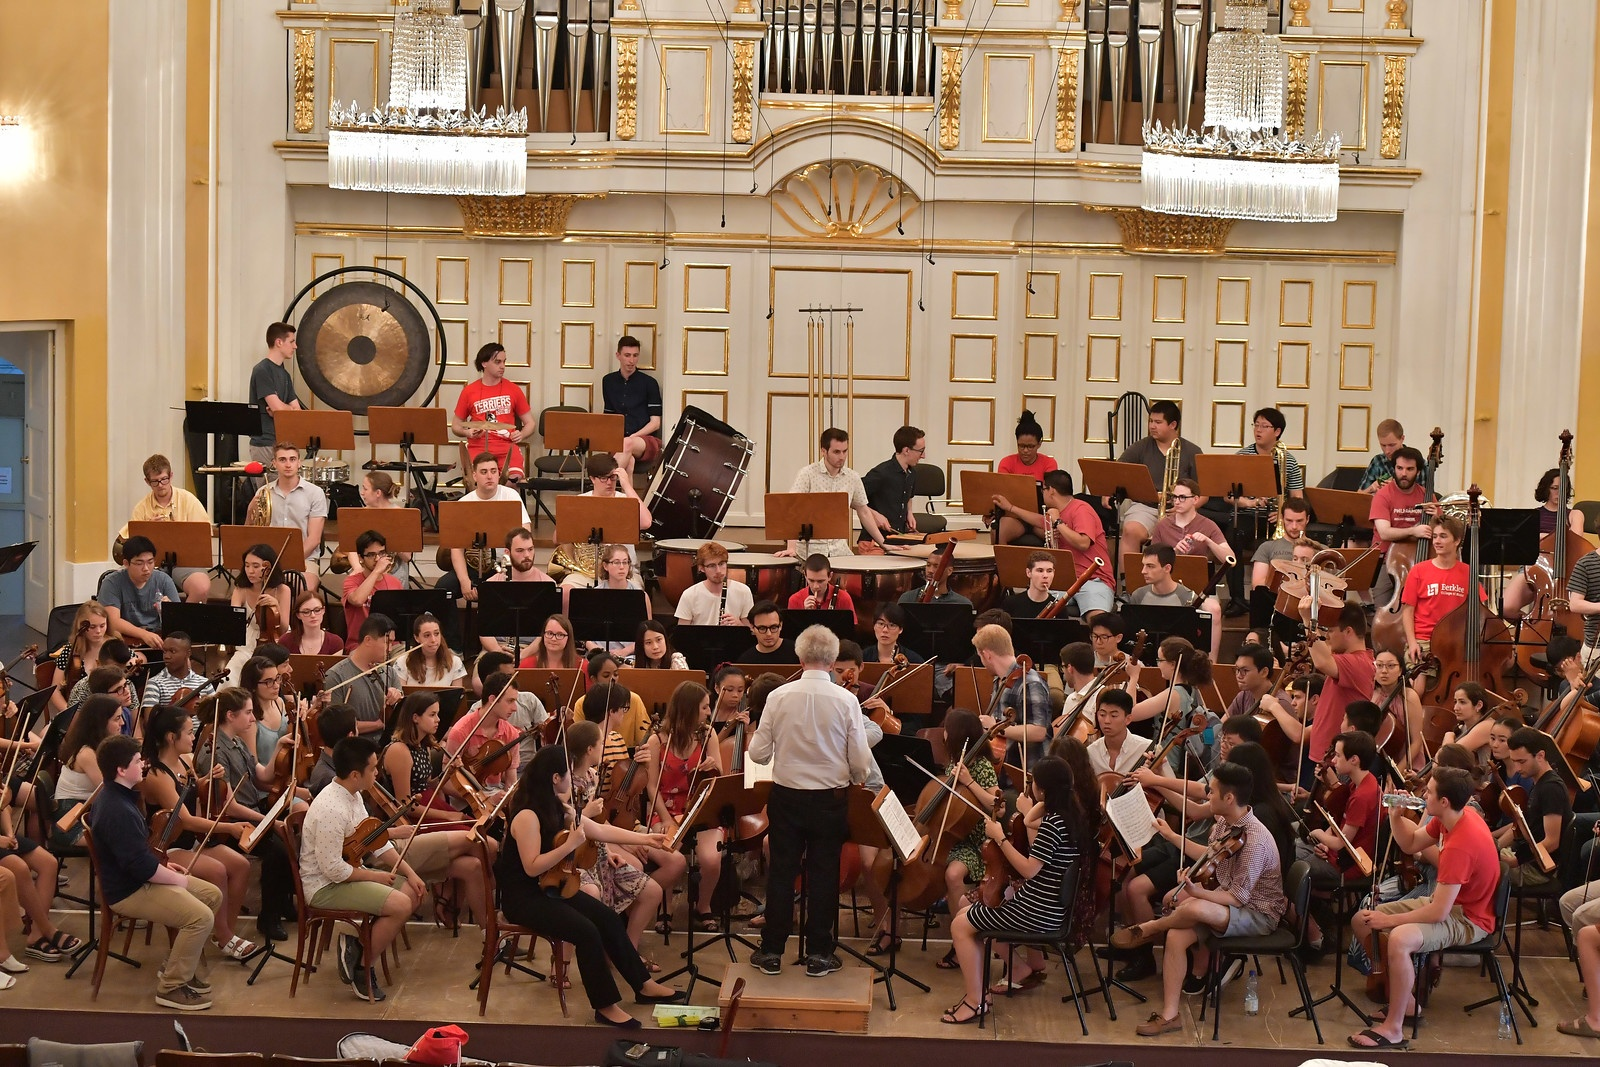 FY19 BPYO Tour - Salzburg Mozarteum Dress Rehearsal (credit - Paul Marotta)